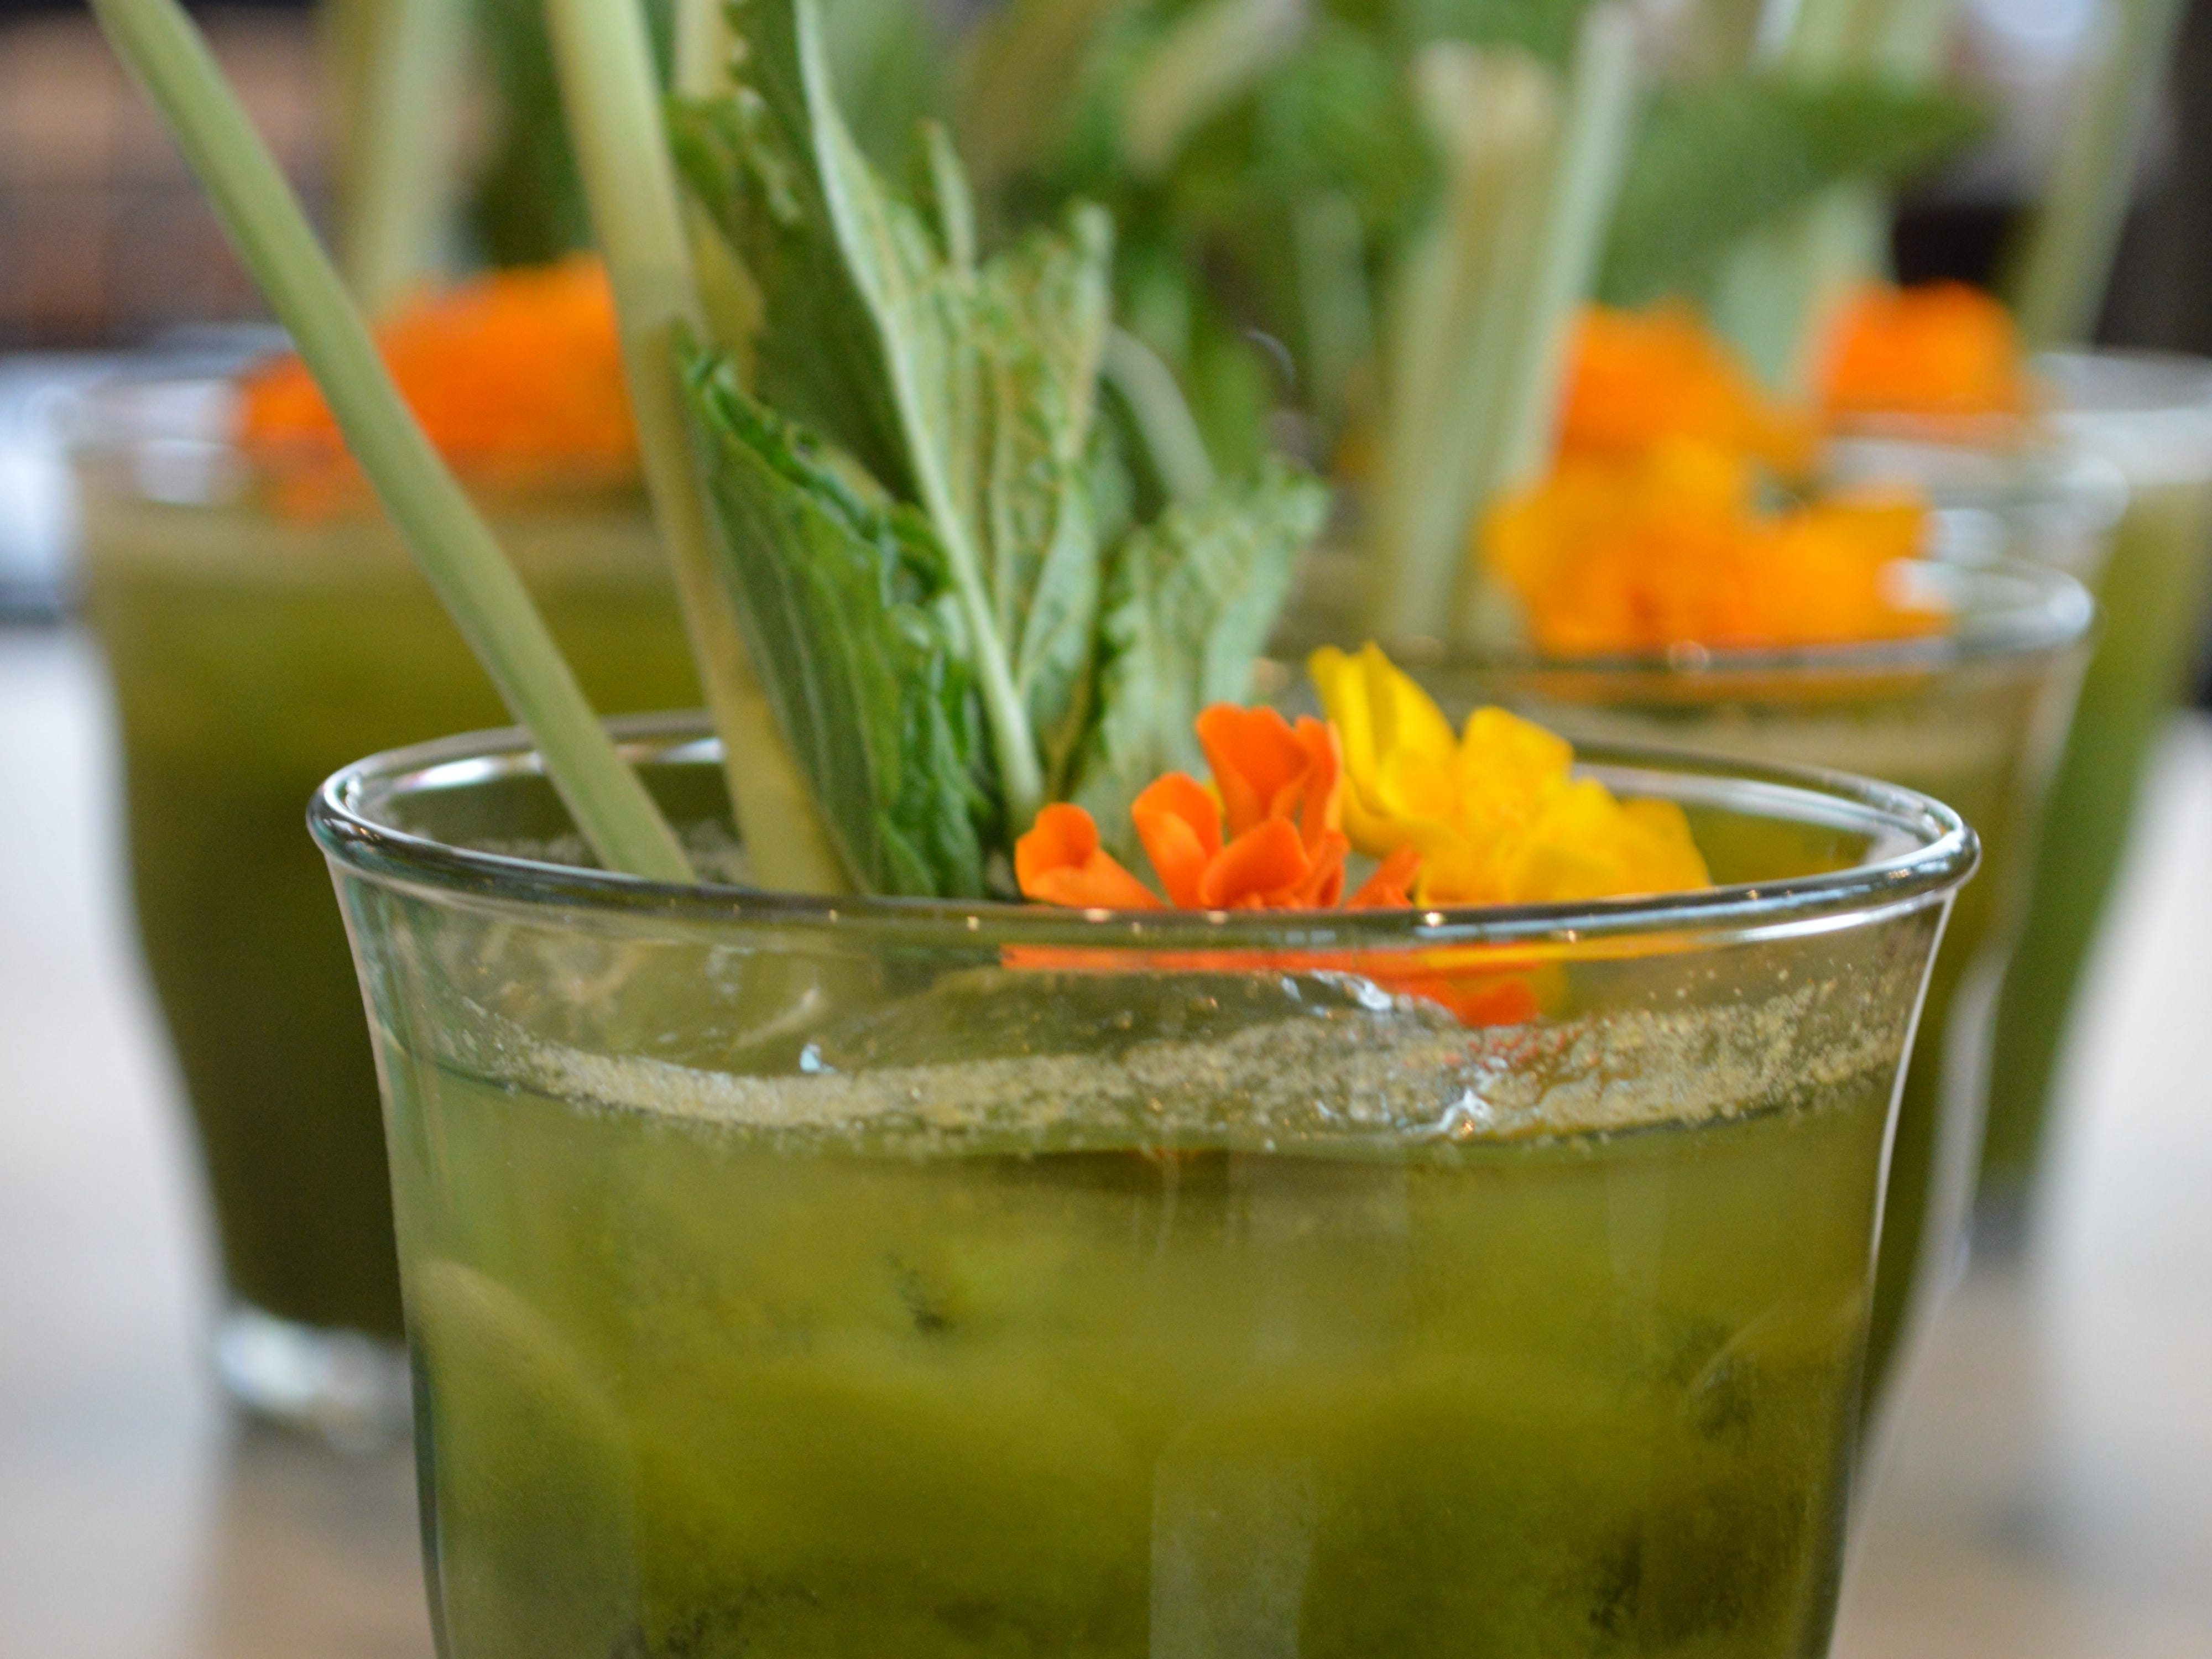 Goddess and The Baker's kale apple cooler is made with kale, Fuji apple, cucumber and lemon.